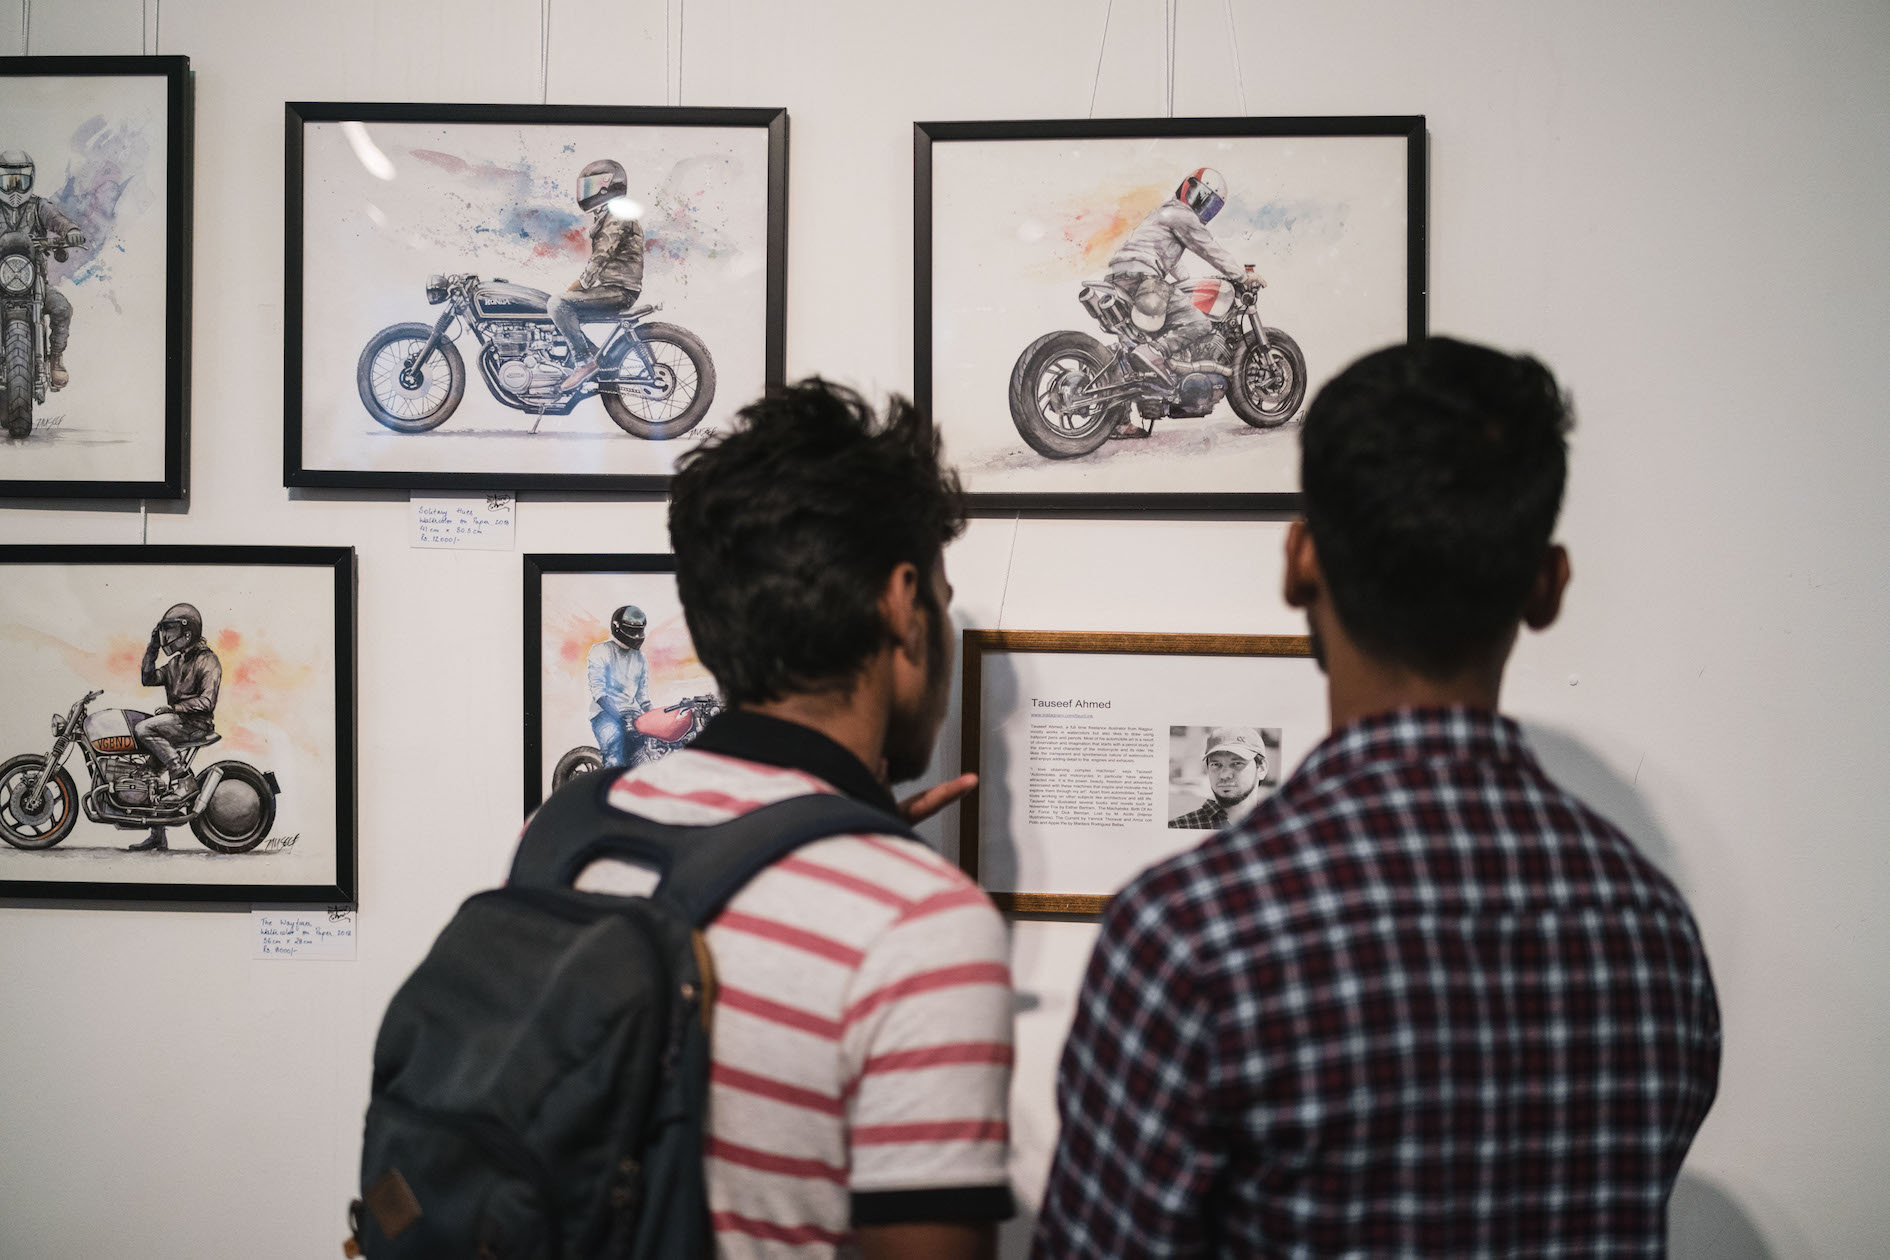 Moto Art Show by Helmets for India